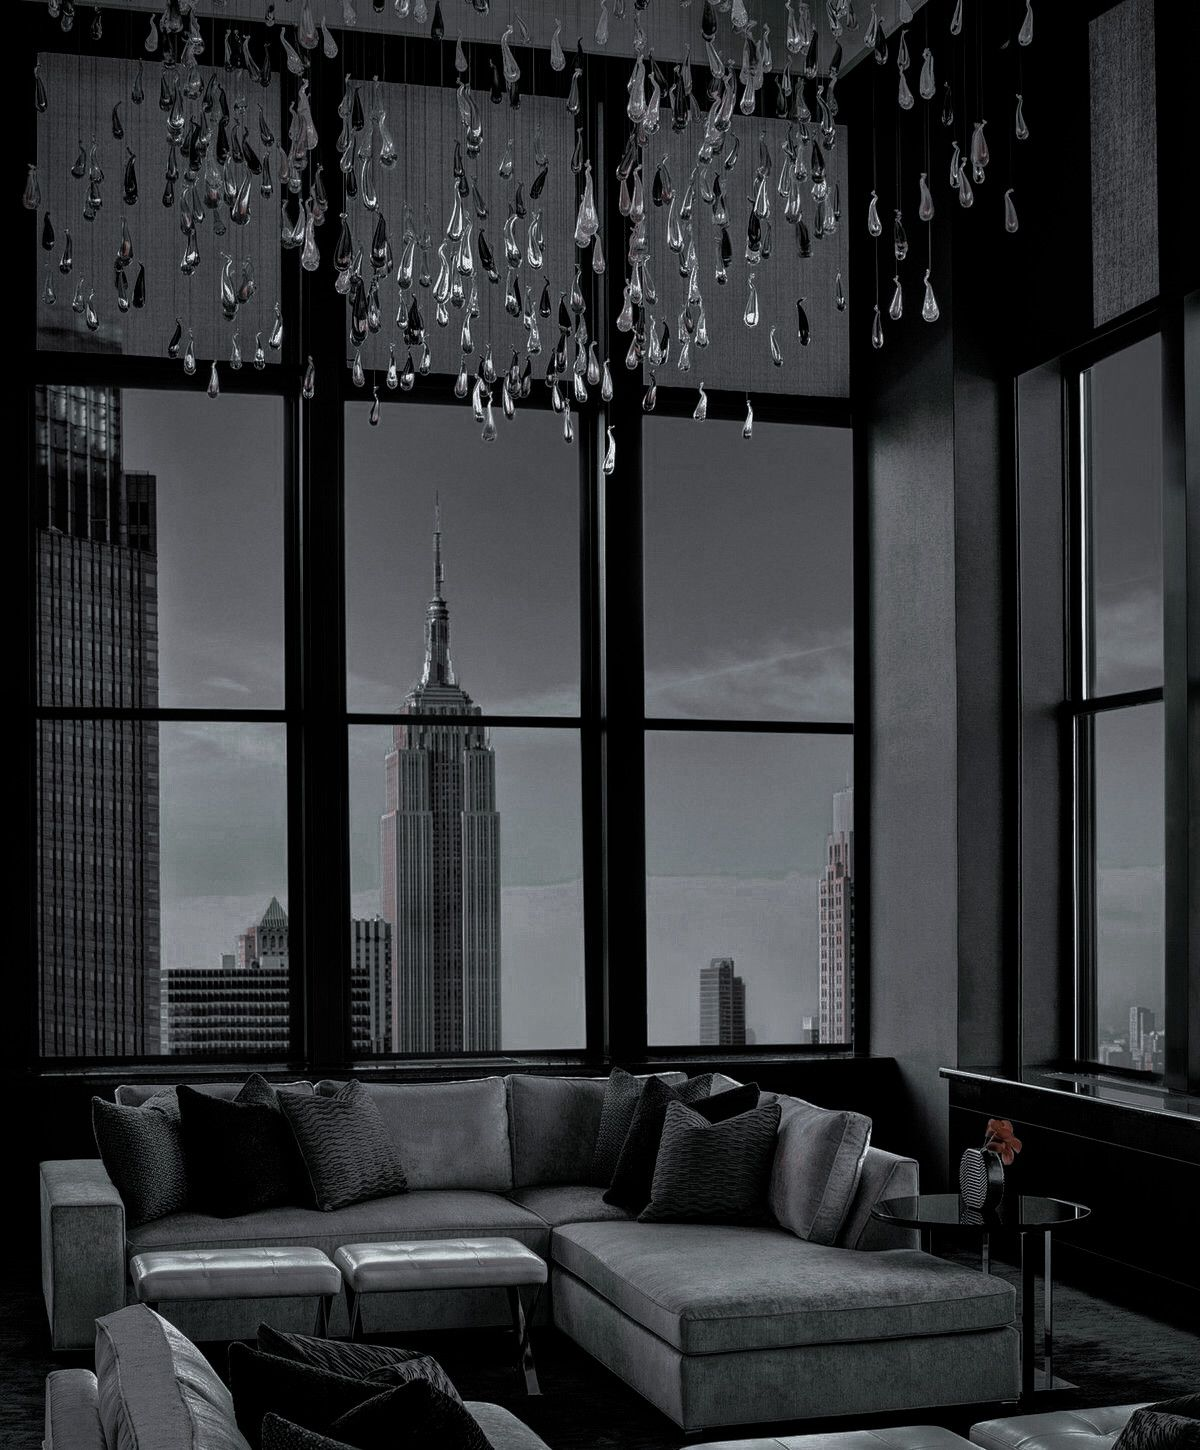 Pin By Ash On Dream House In 2021 Dream House Interior Interior Design Apartment Bedroom Luxury Homes Dream Houses Living room aesthetic dark